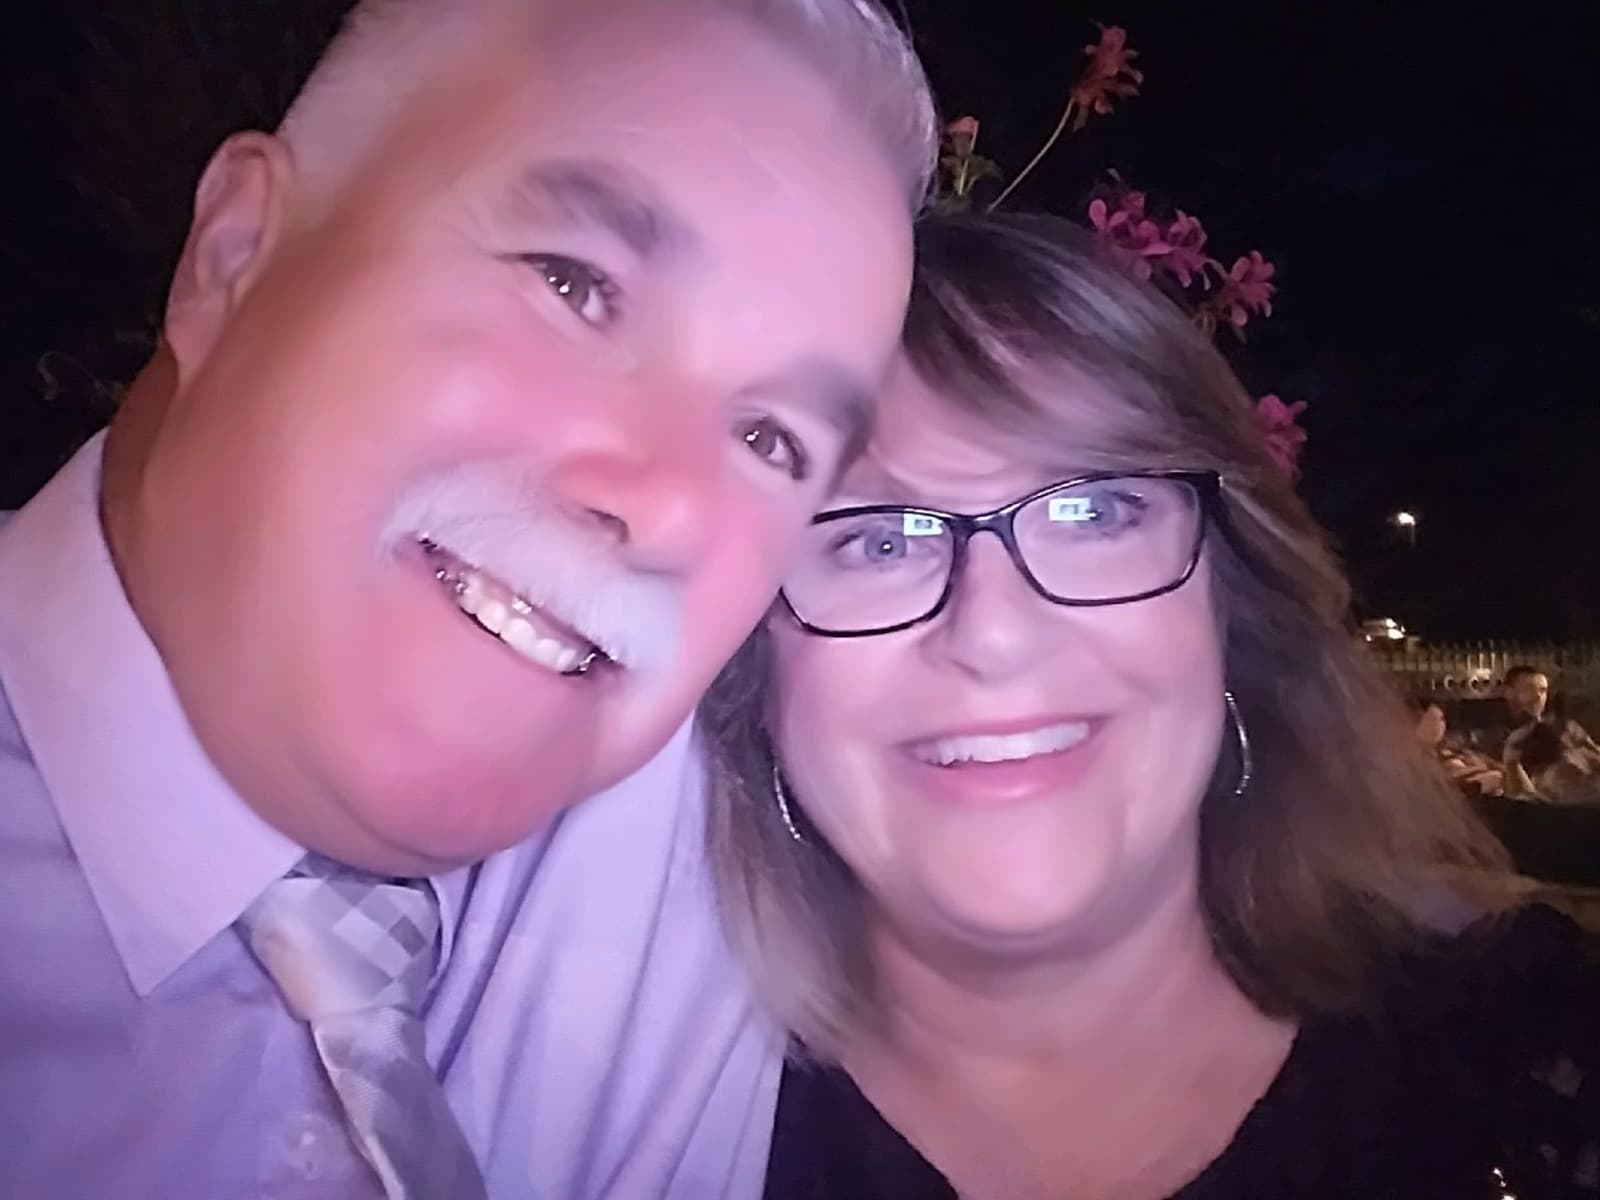 Mary ann & Jim from London, Ontario, Canada